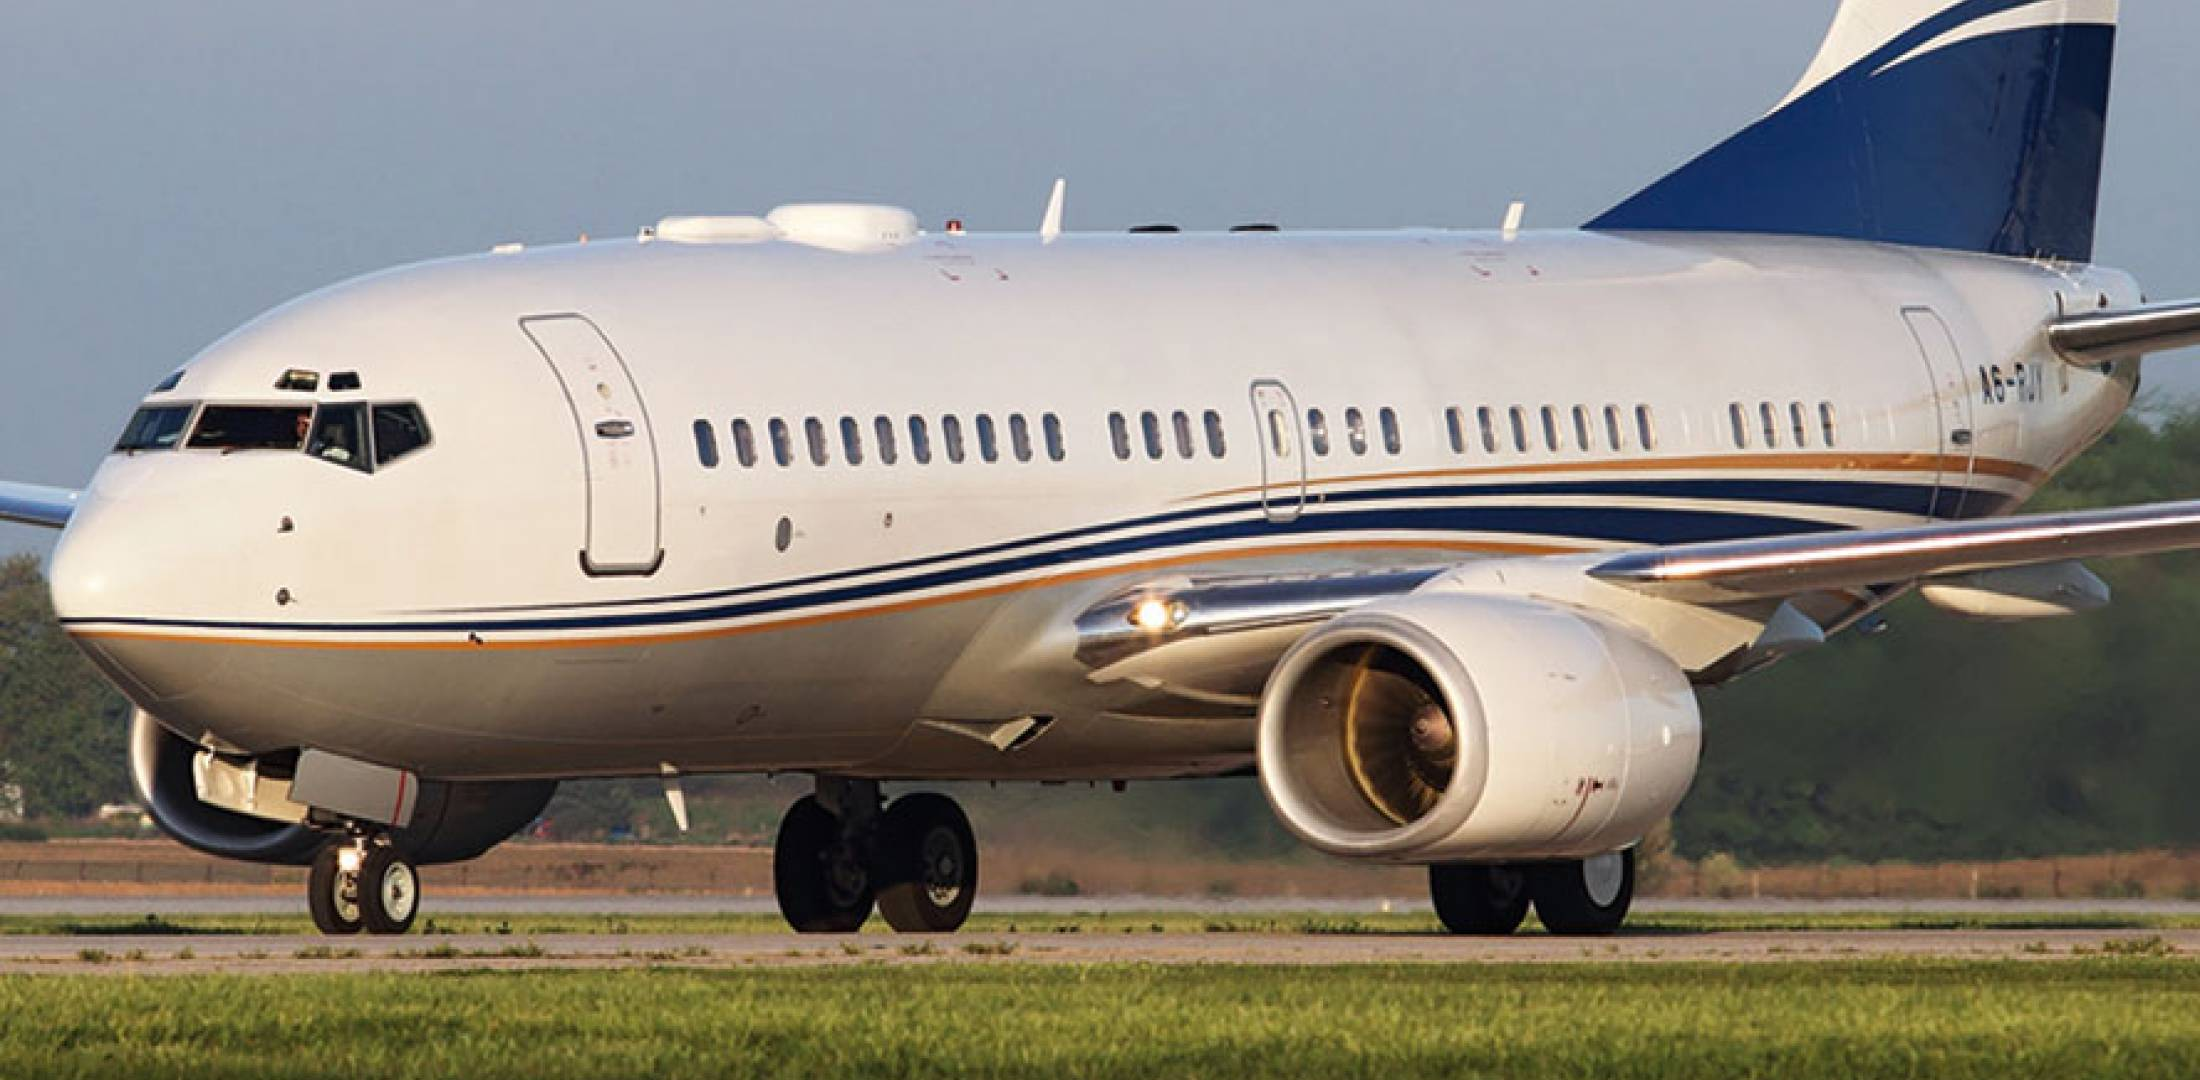 With an eye on expansion, Royal Jet is looking to replace its six BBJs this year. In contention for the role are Boeing's BBJ Max (based on the 737 Max) and Airbus's A320 neo.